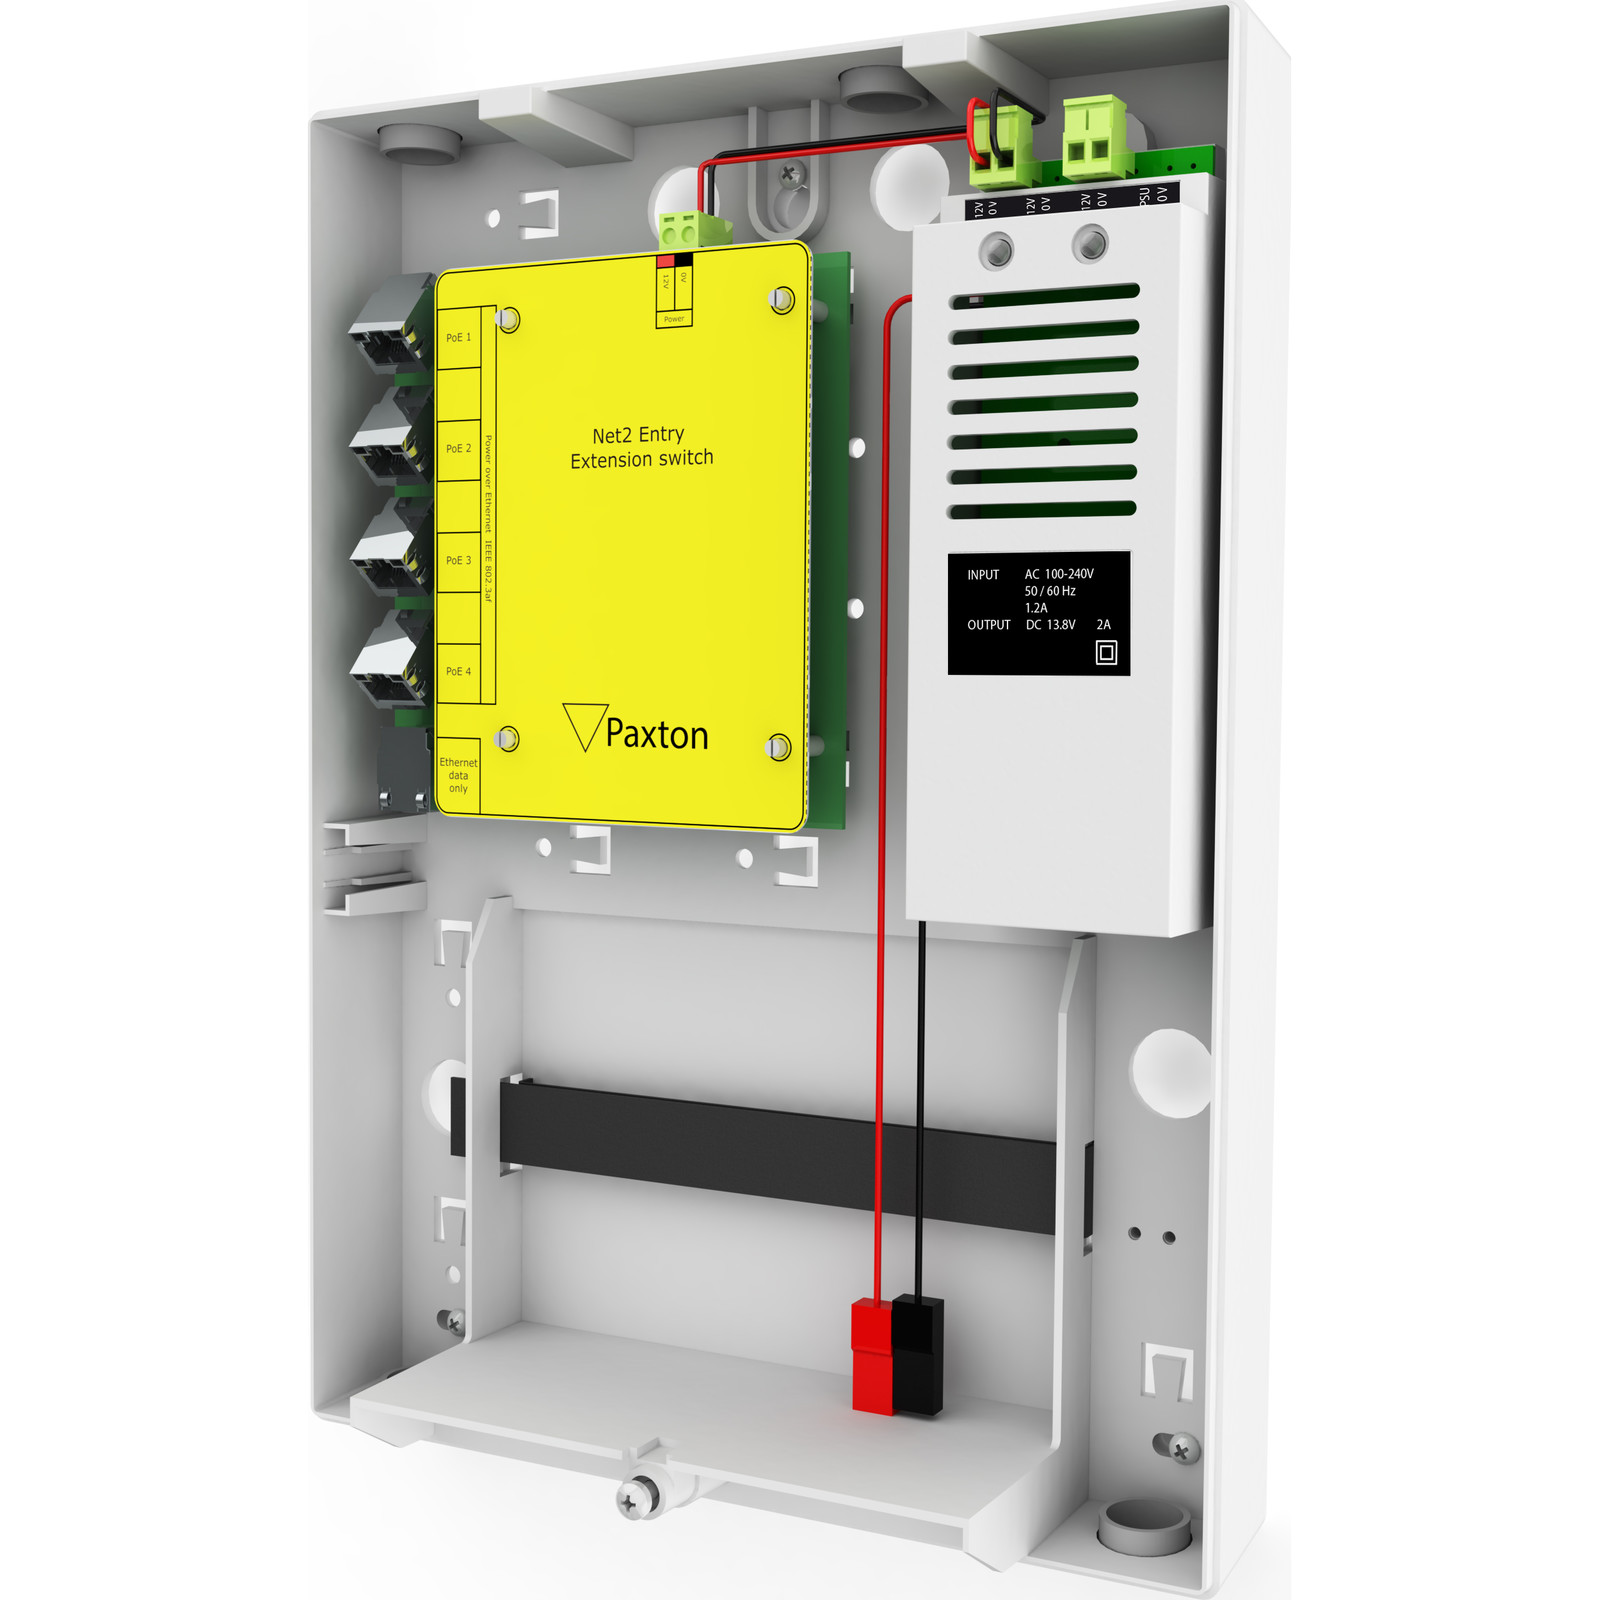 NET2 ENTRY EXTENSION SWITCH